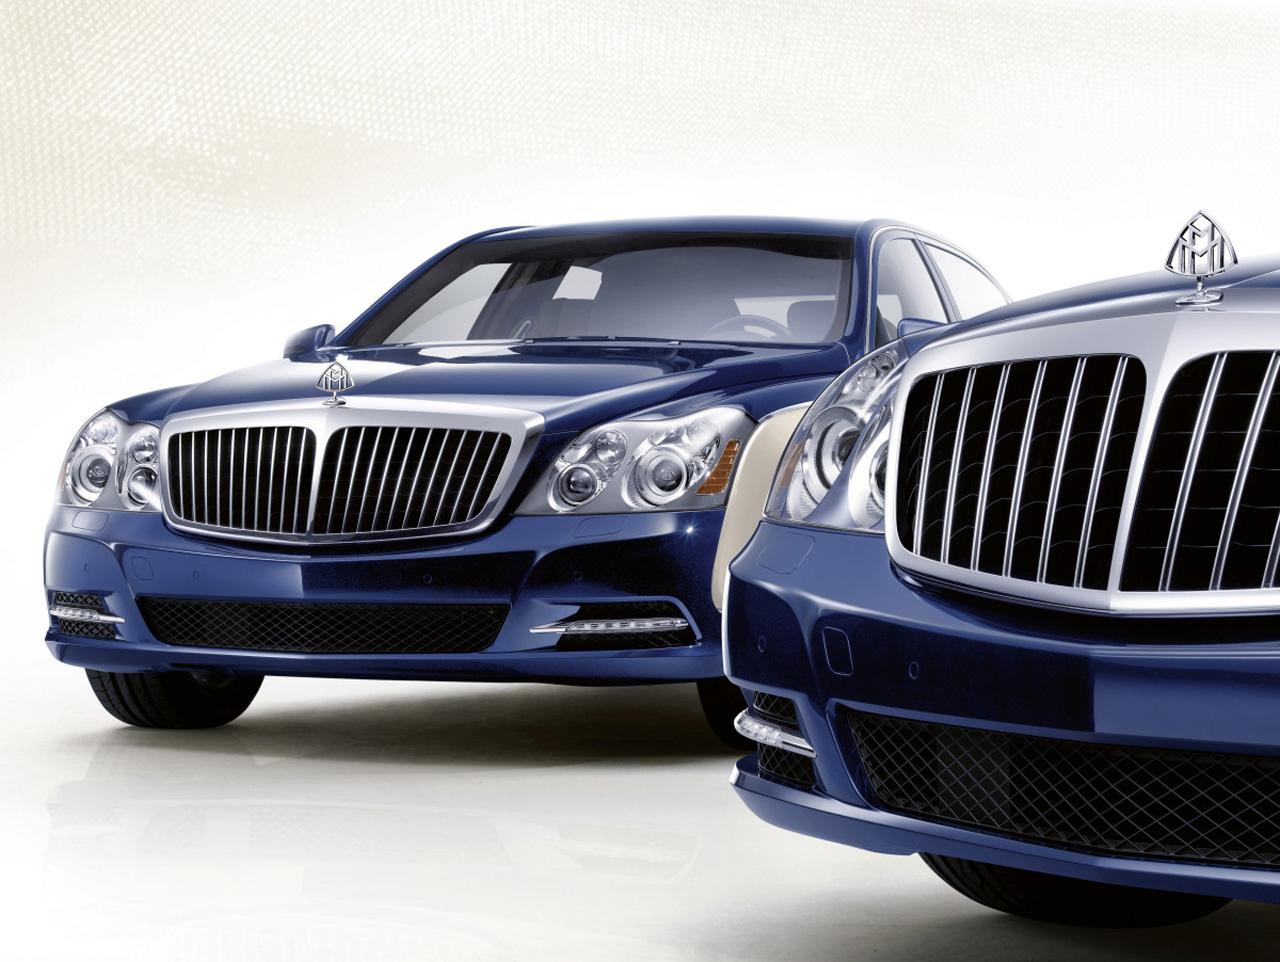 2012 Maybach models 3 Daimler Car Makers increases prices on 2012 Maybach models